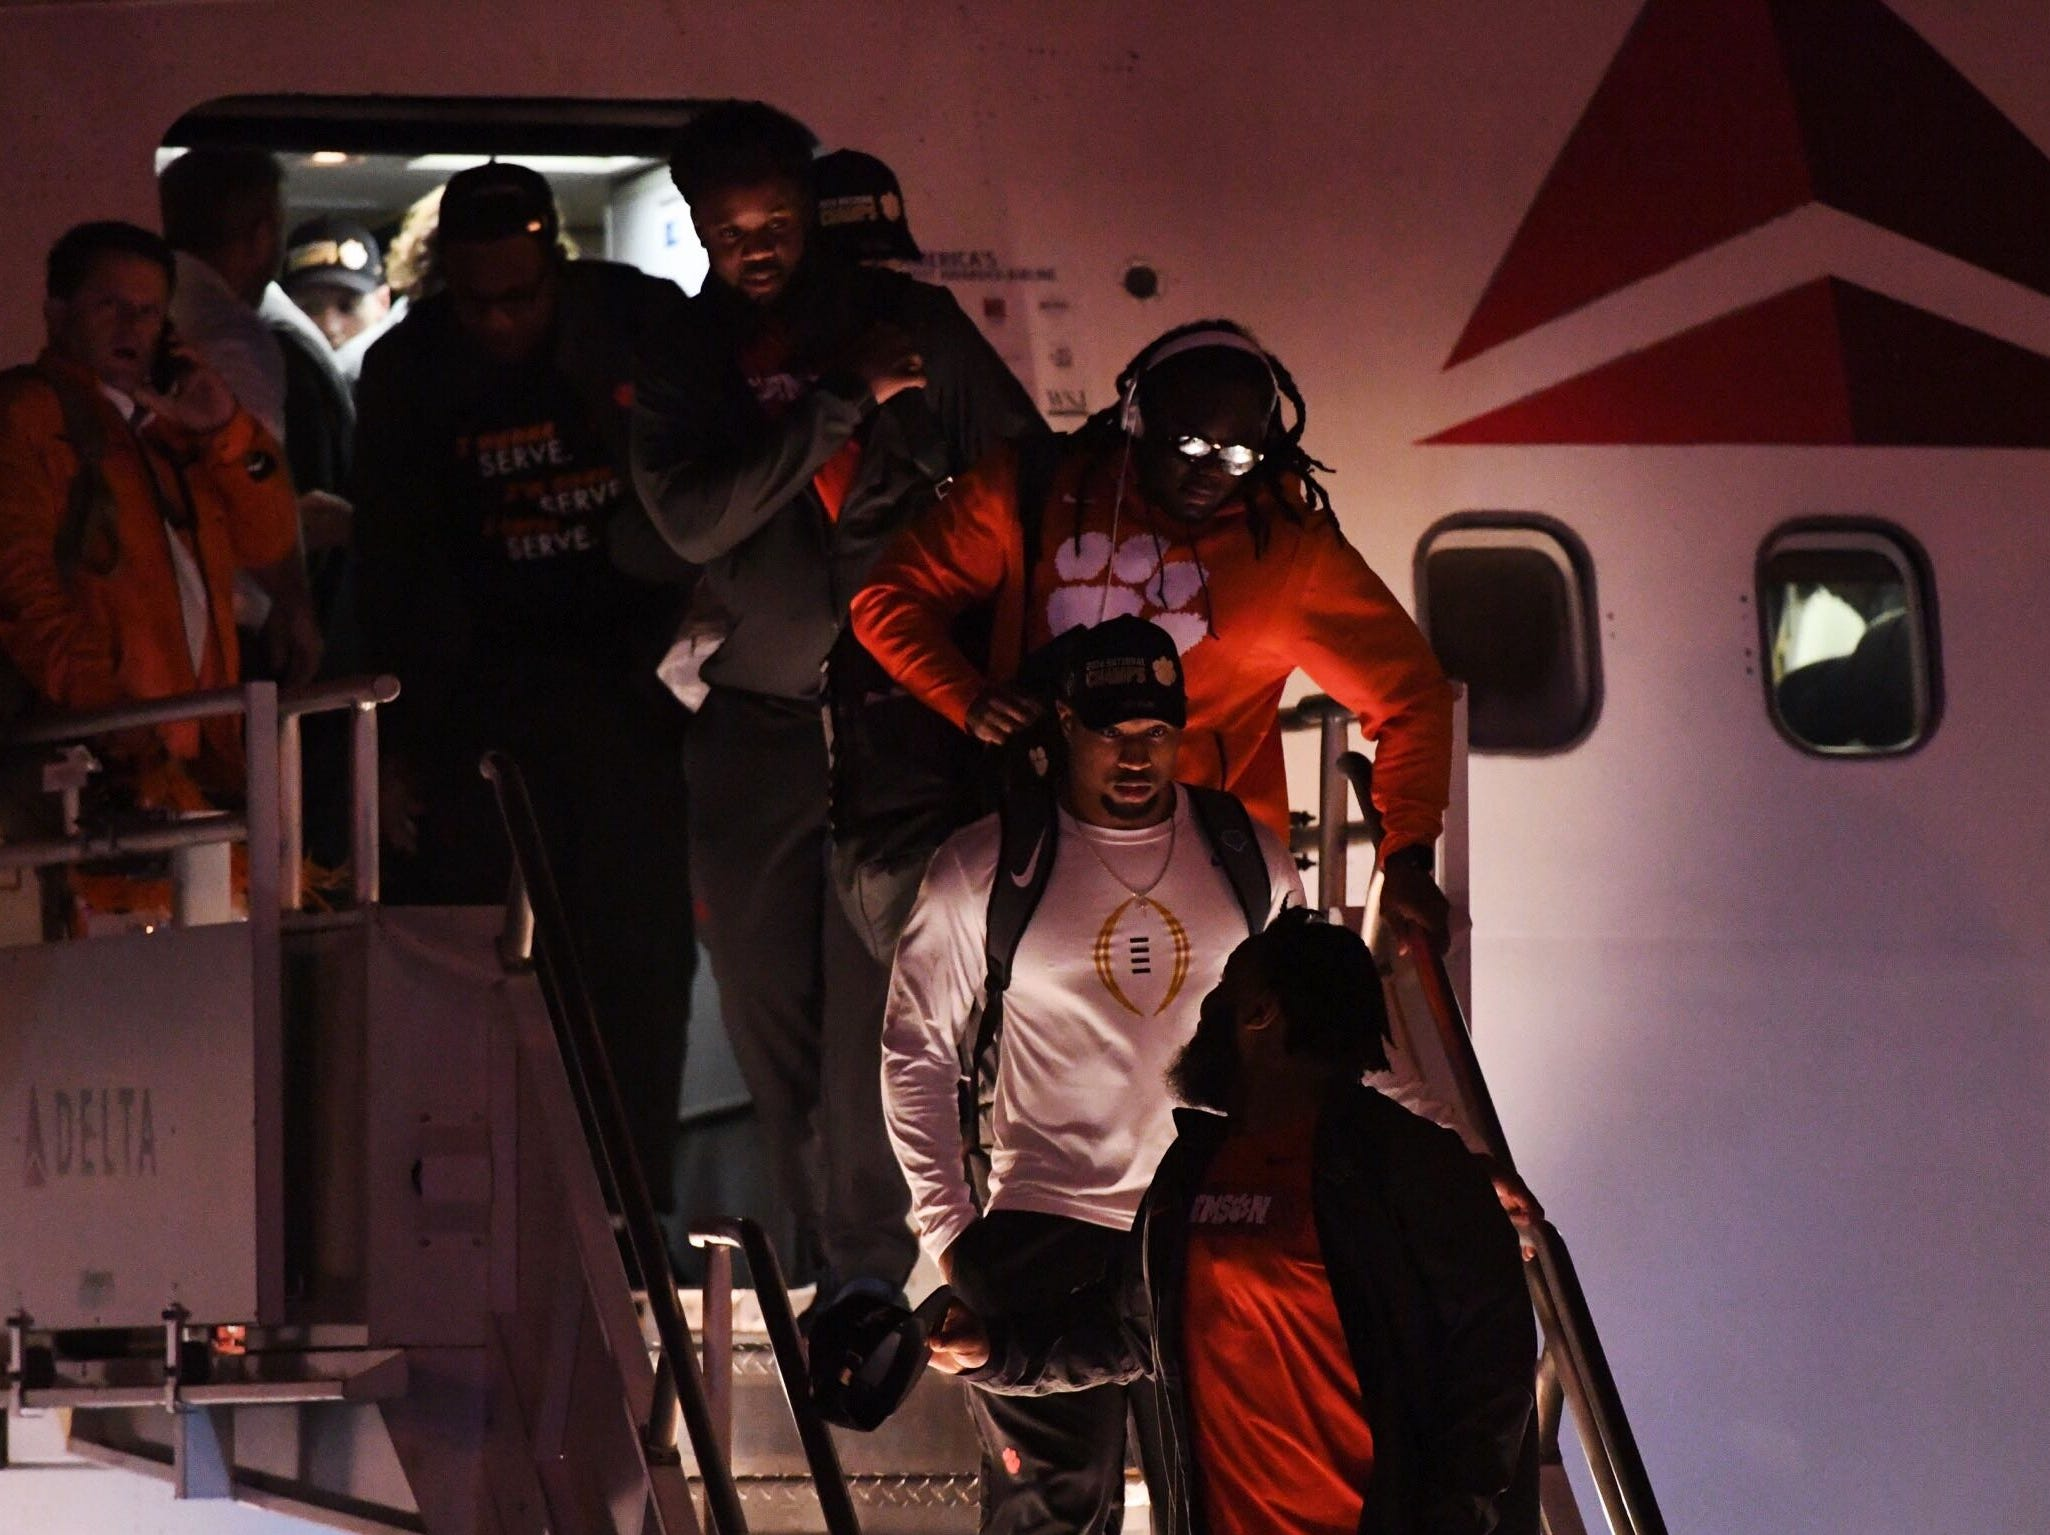 Clemson players and coaches arrive back in South Carolina after defeating Alabama in the National Championship game in Santa Clara, California.